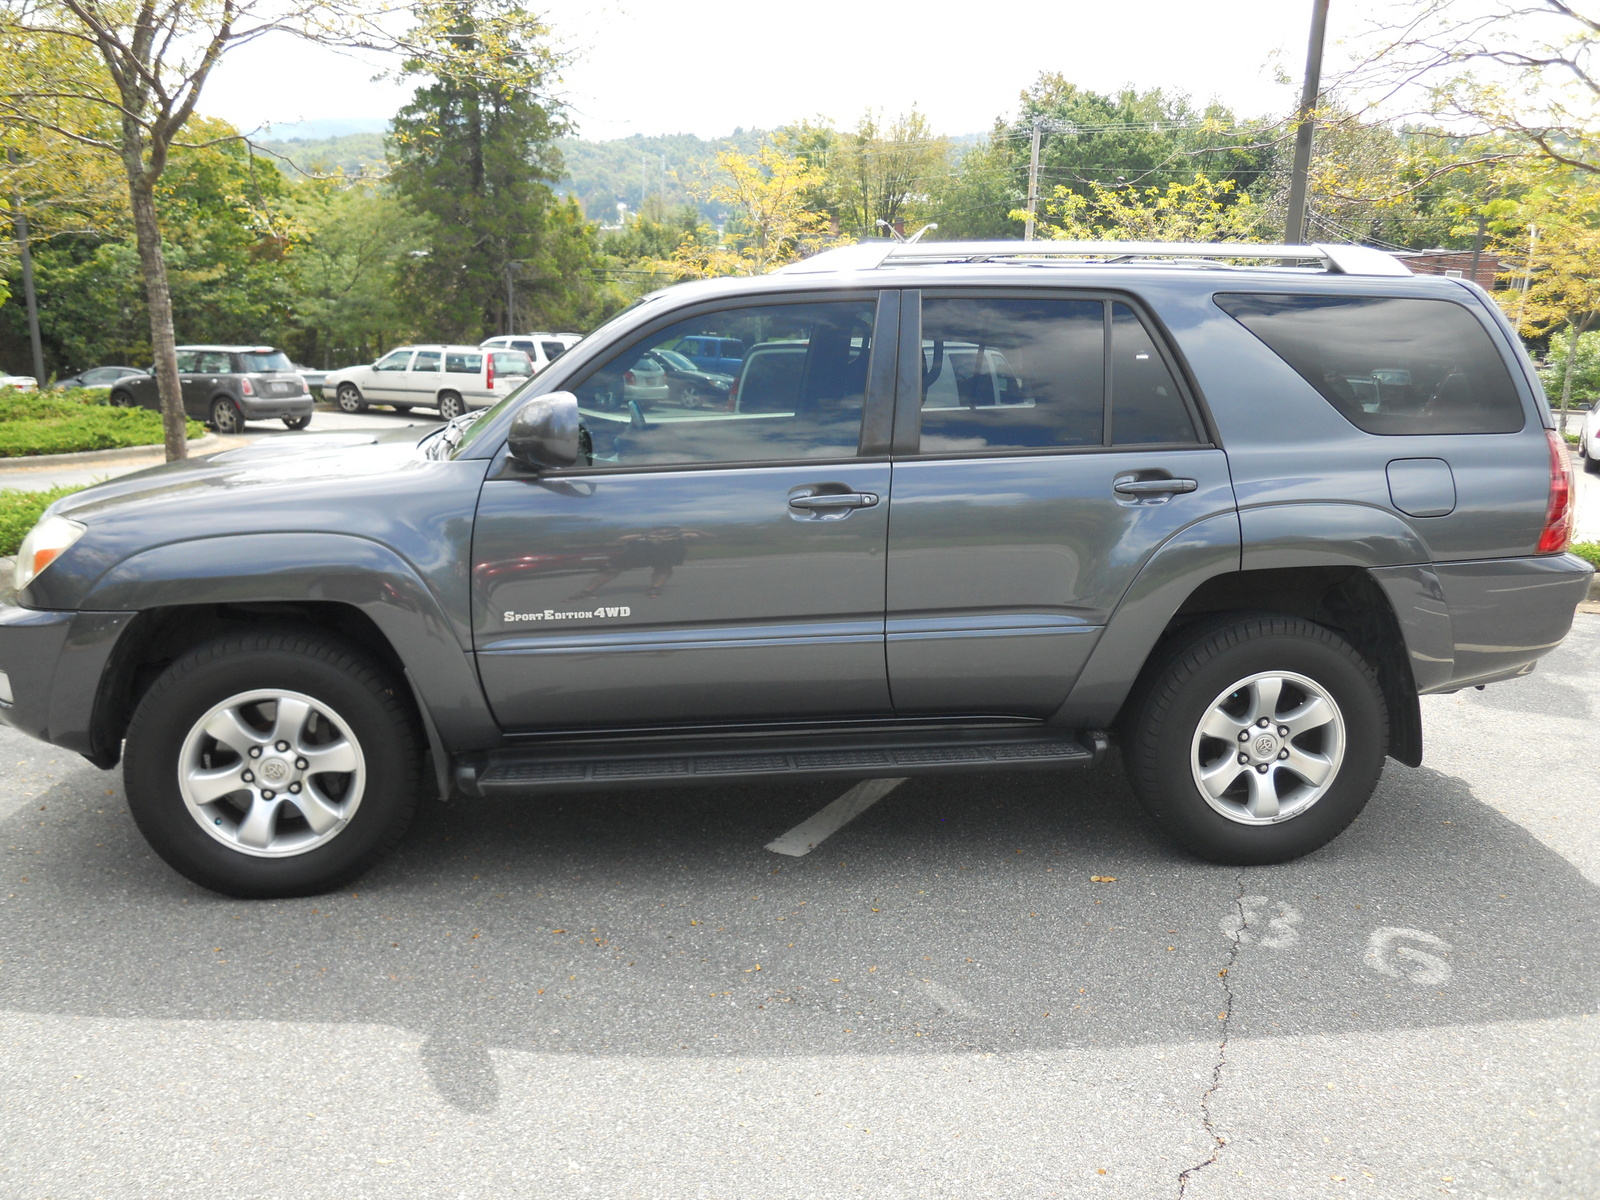 2000 Jeep Cherokee Sport 2005 Toyota 4Runner - Pictures - CarGurus